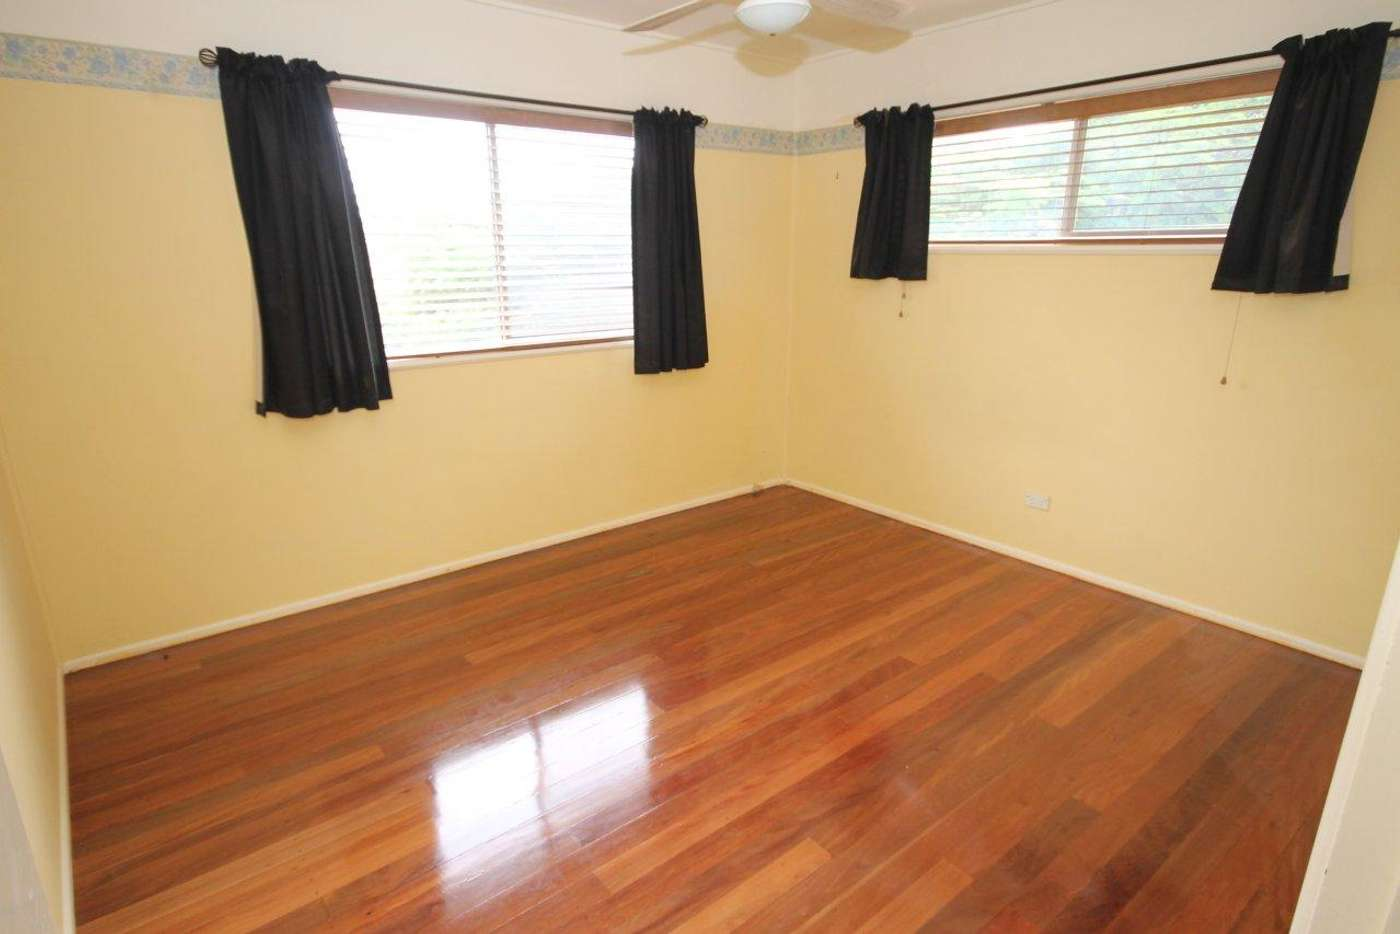 Sixth view of Homely house listing, 172 MOLLOY ROAD, Morningside QLD 4170